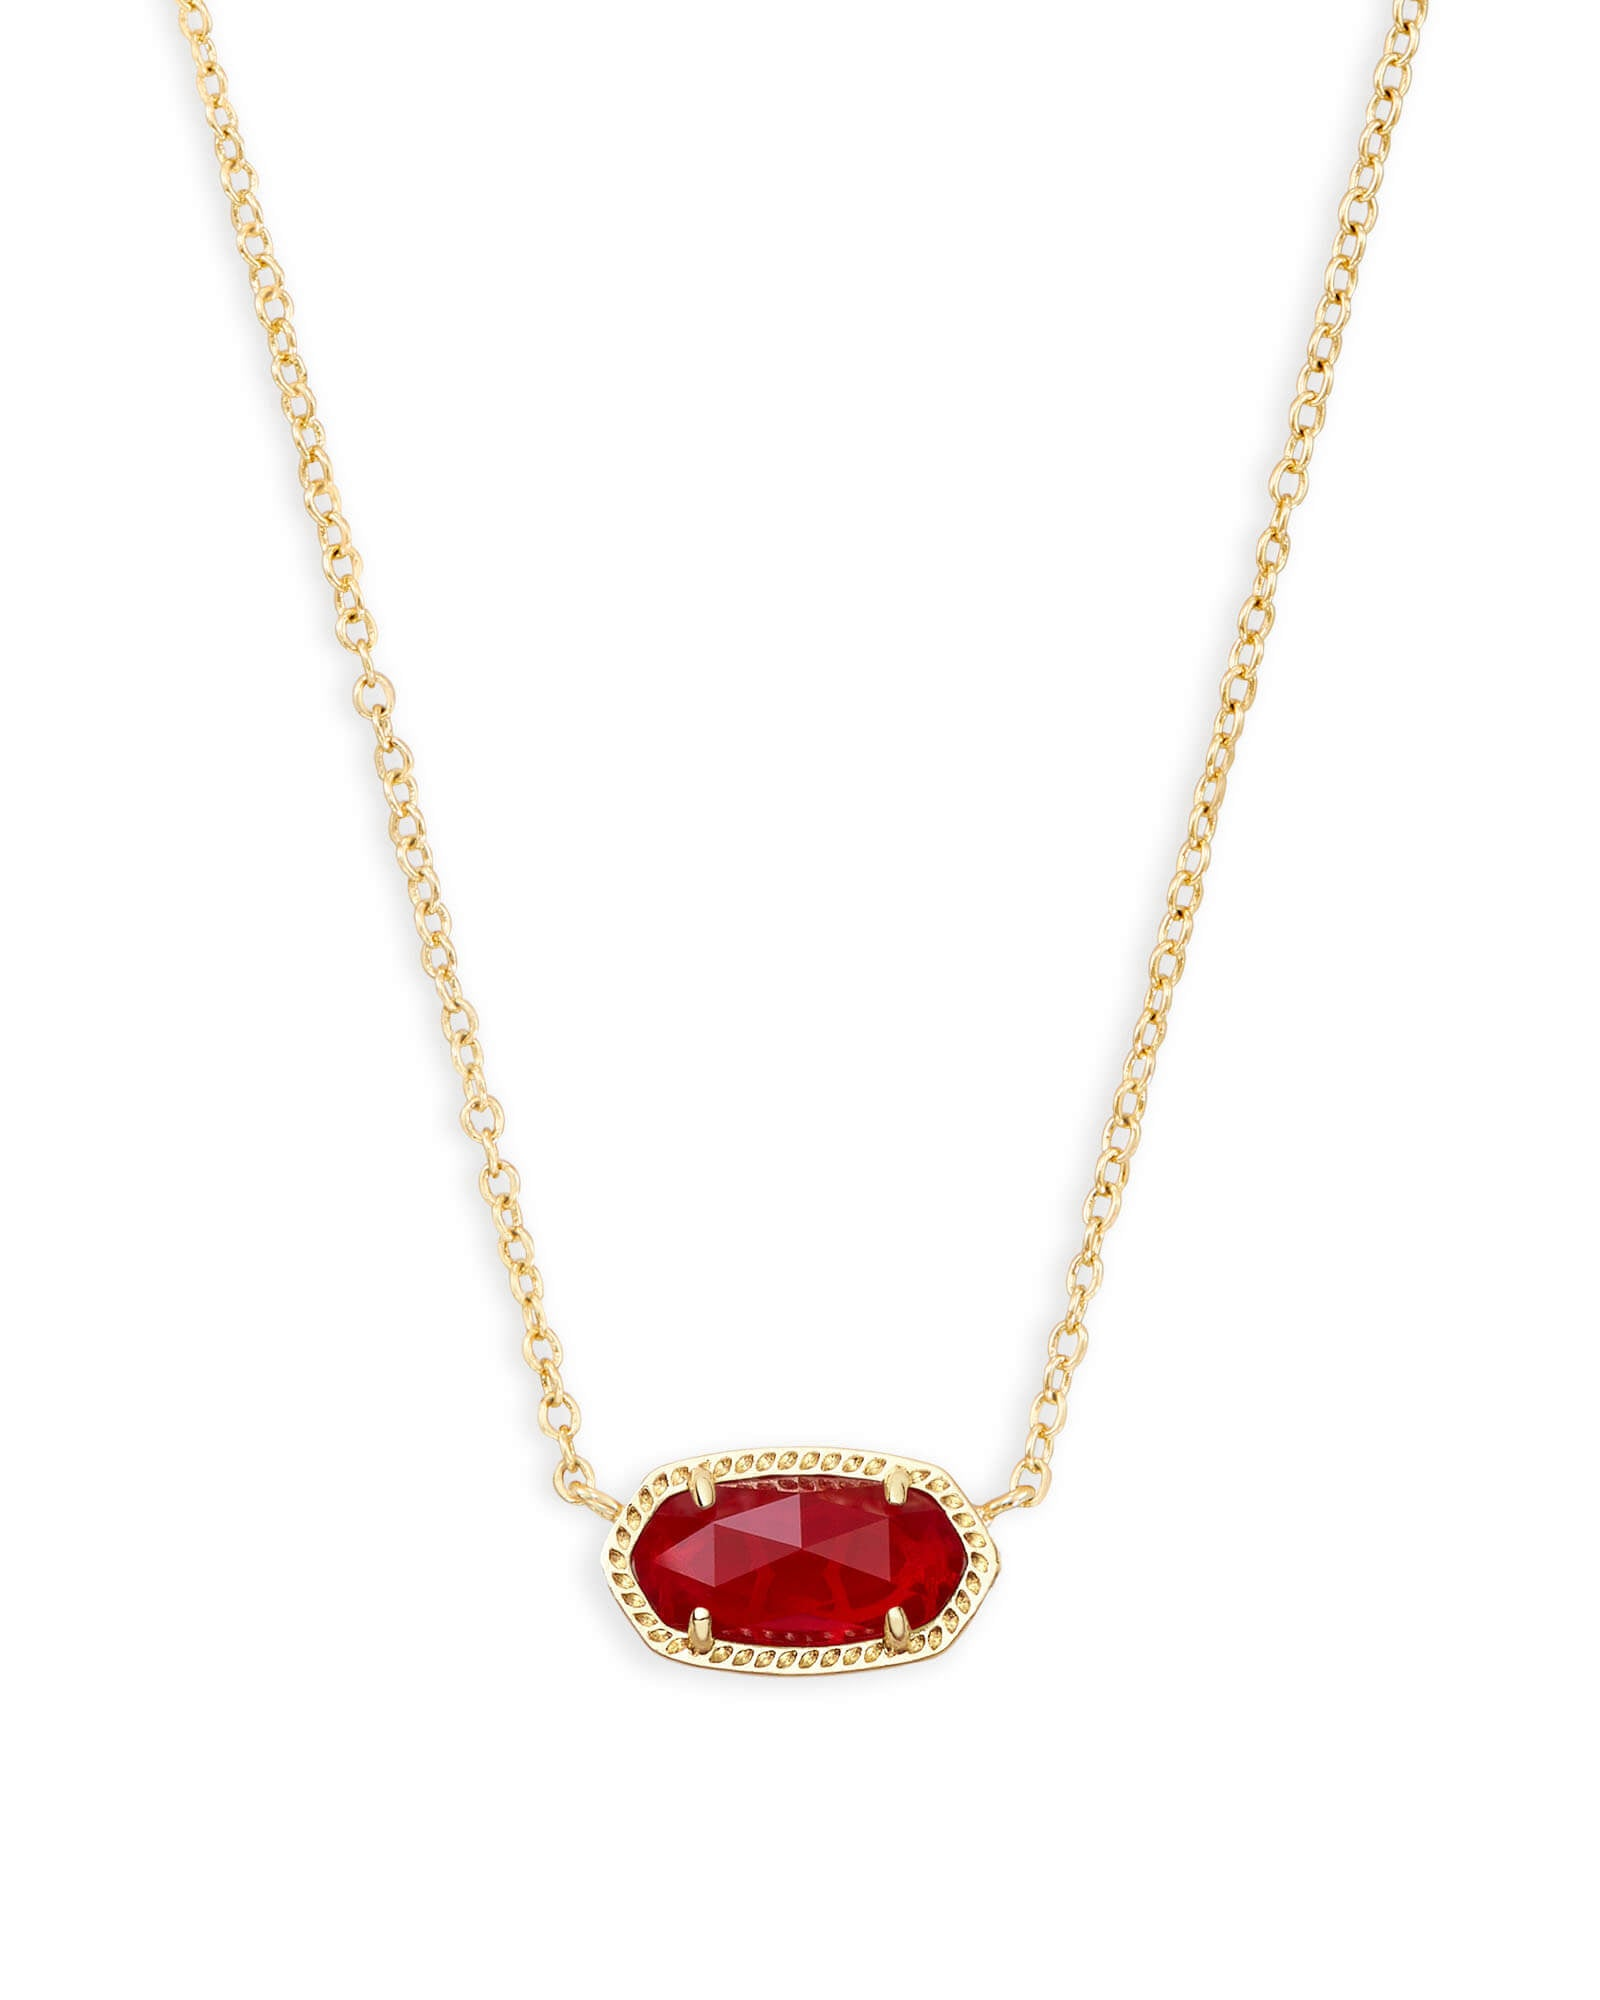 Elisa Necklace in GD Red